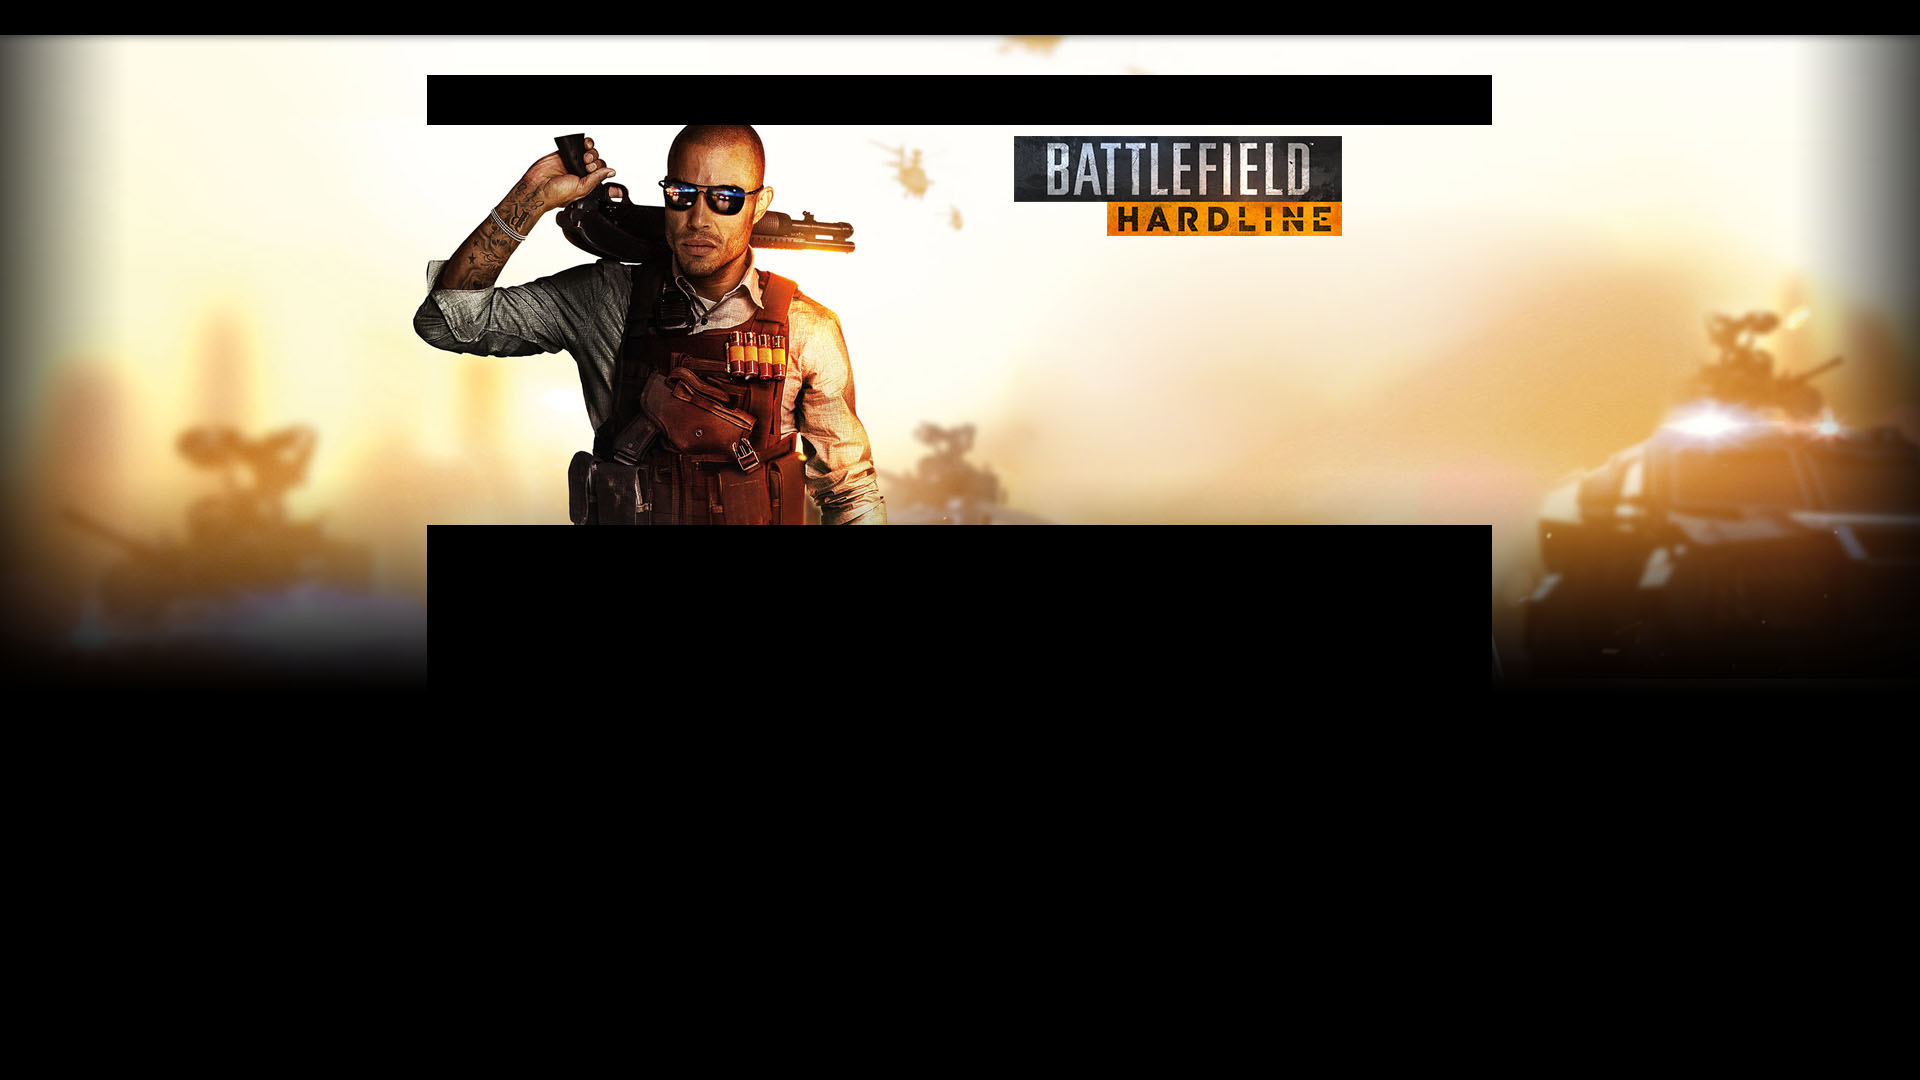 Battlefield Hardline video game